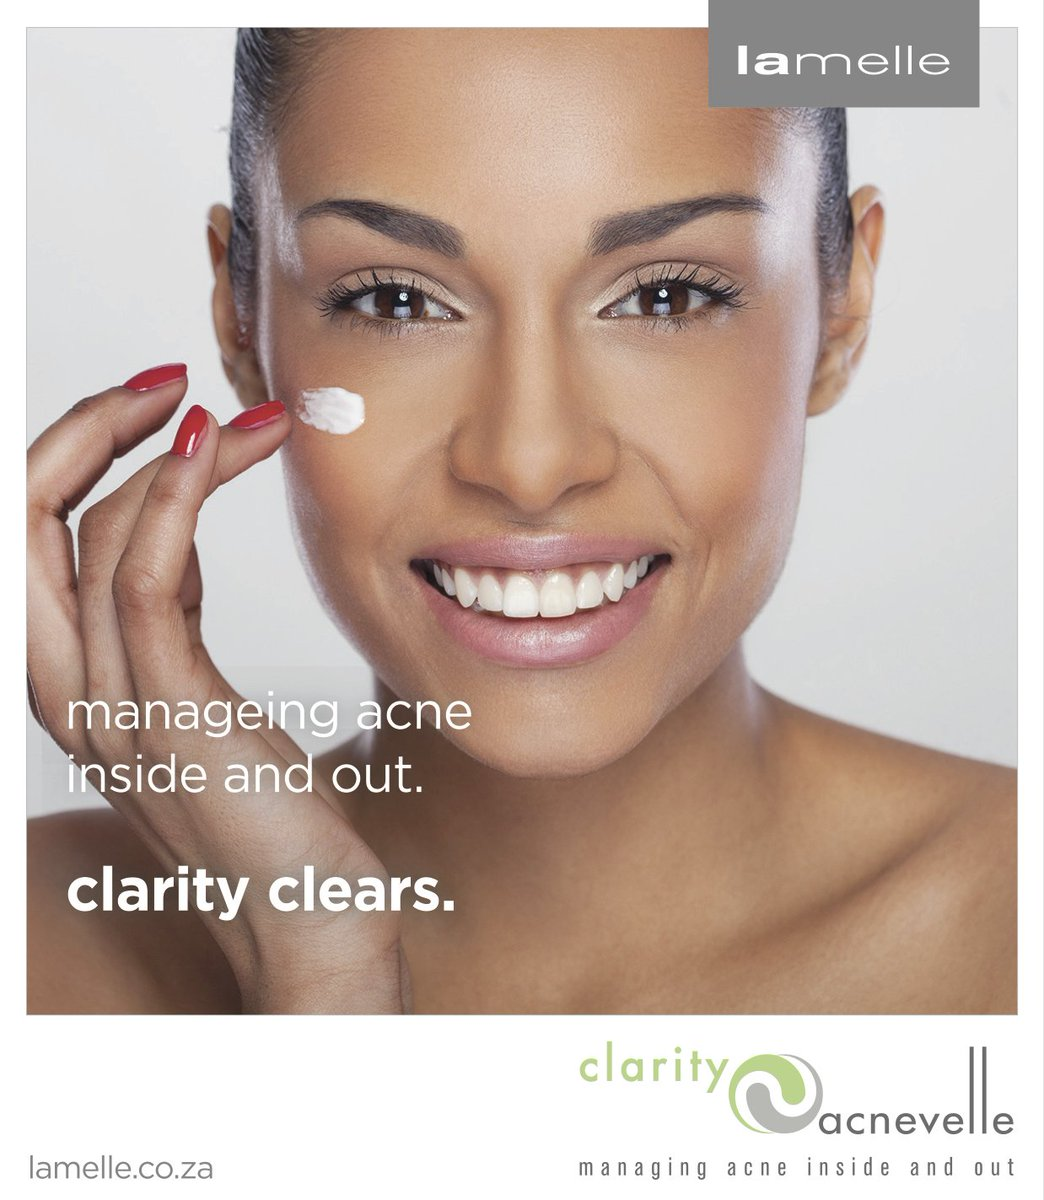 Manage your acne inside and out with Clarity. #ClarityClears